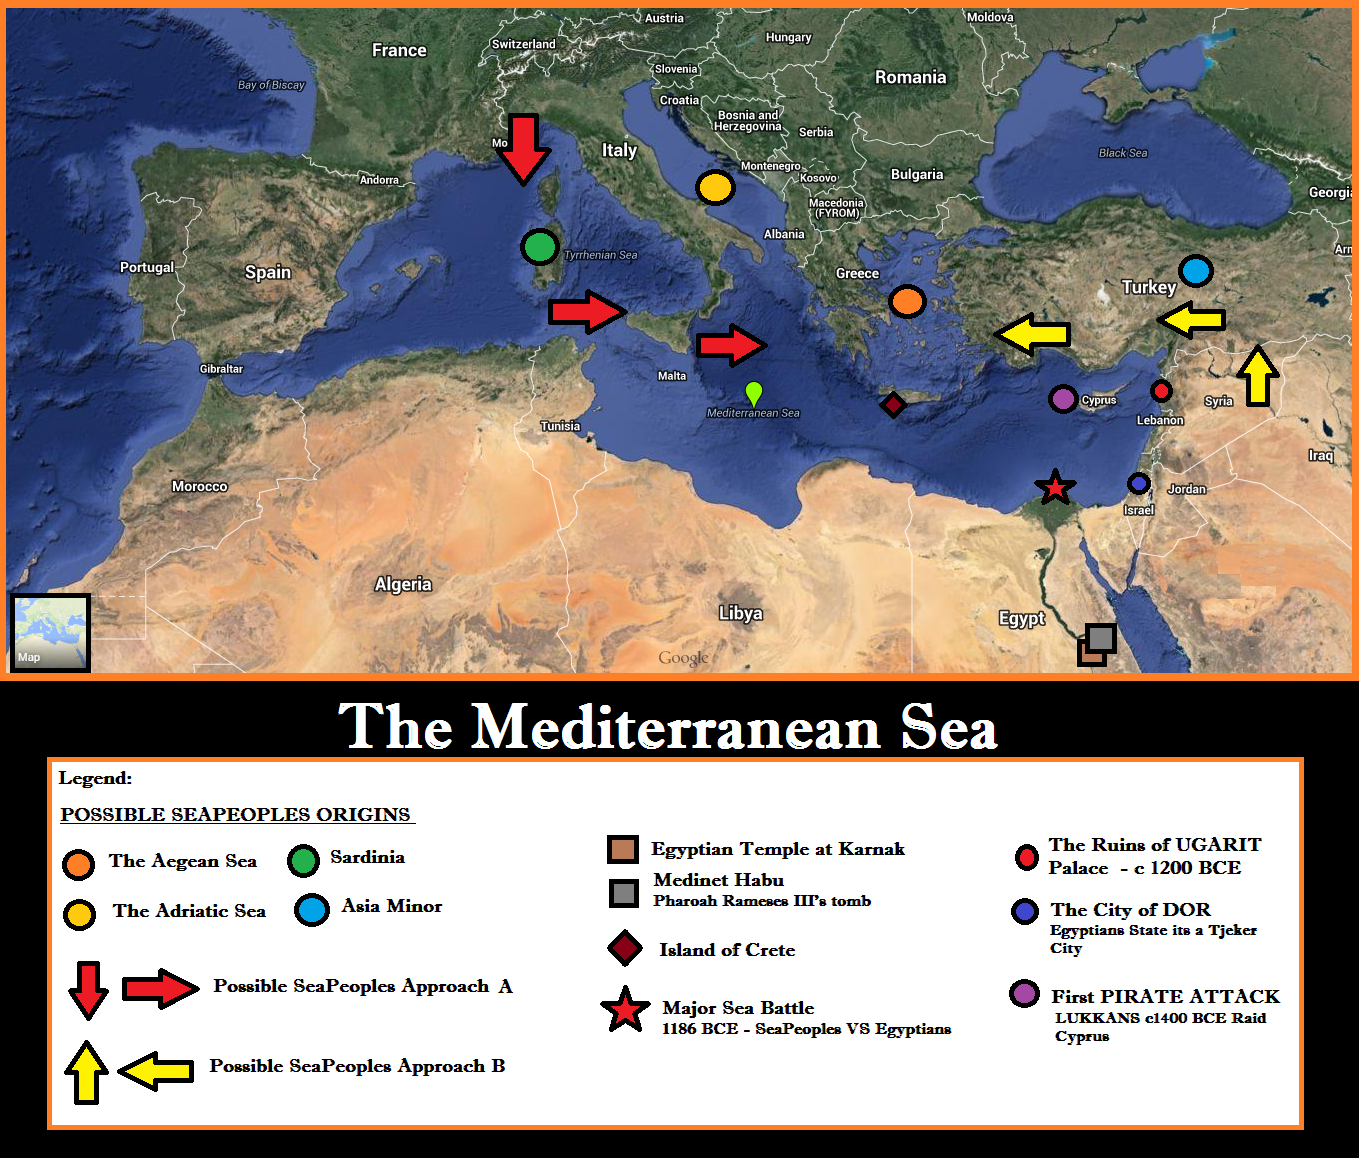 The Mediterranean Sea - Episode 2 - Sea Peoples